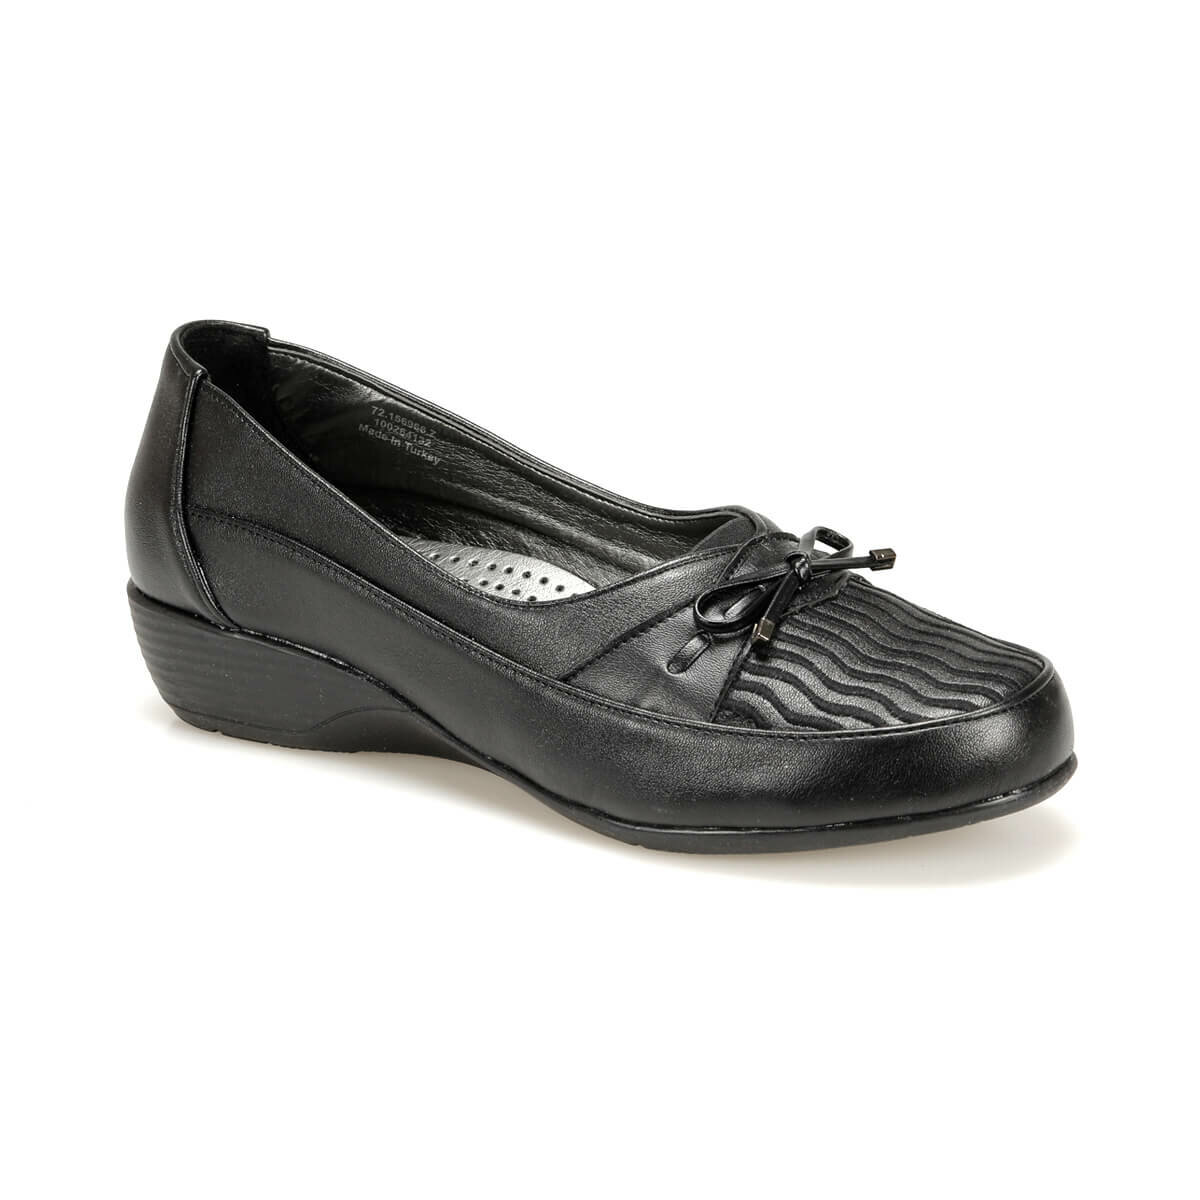 FLO 72. 156966.Z Black Women Shoes Polaris